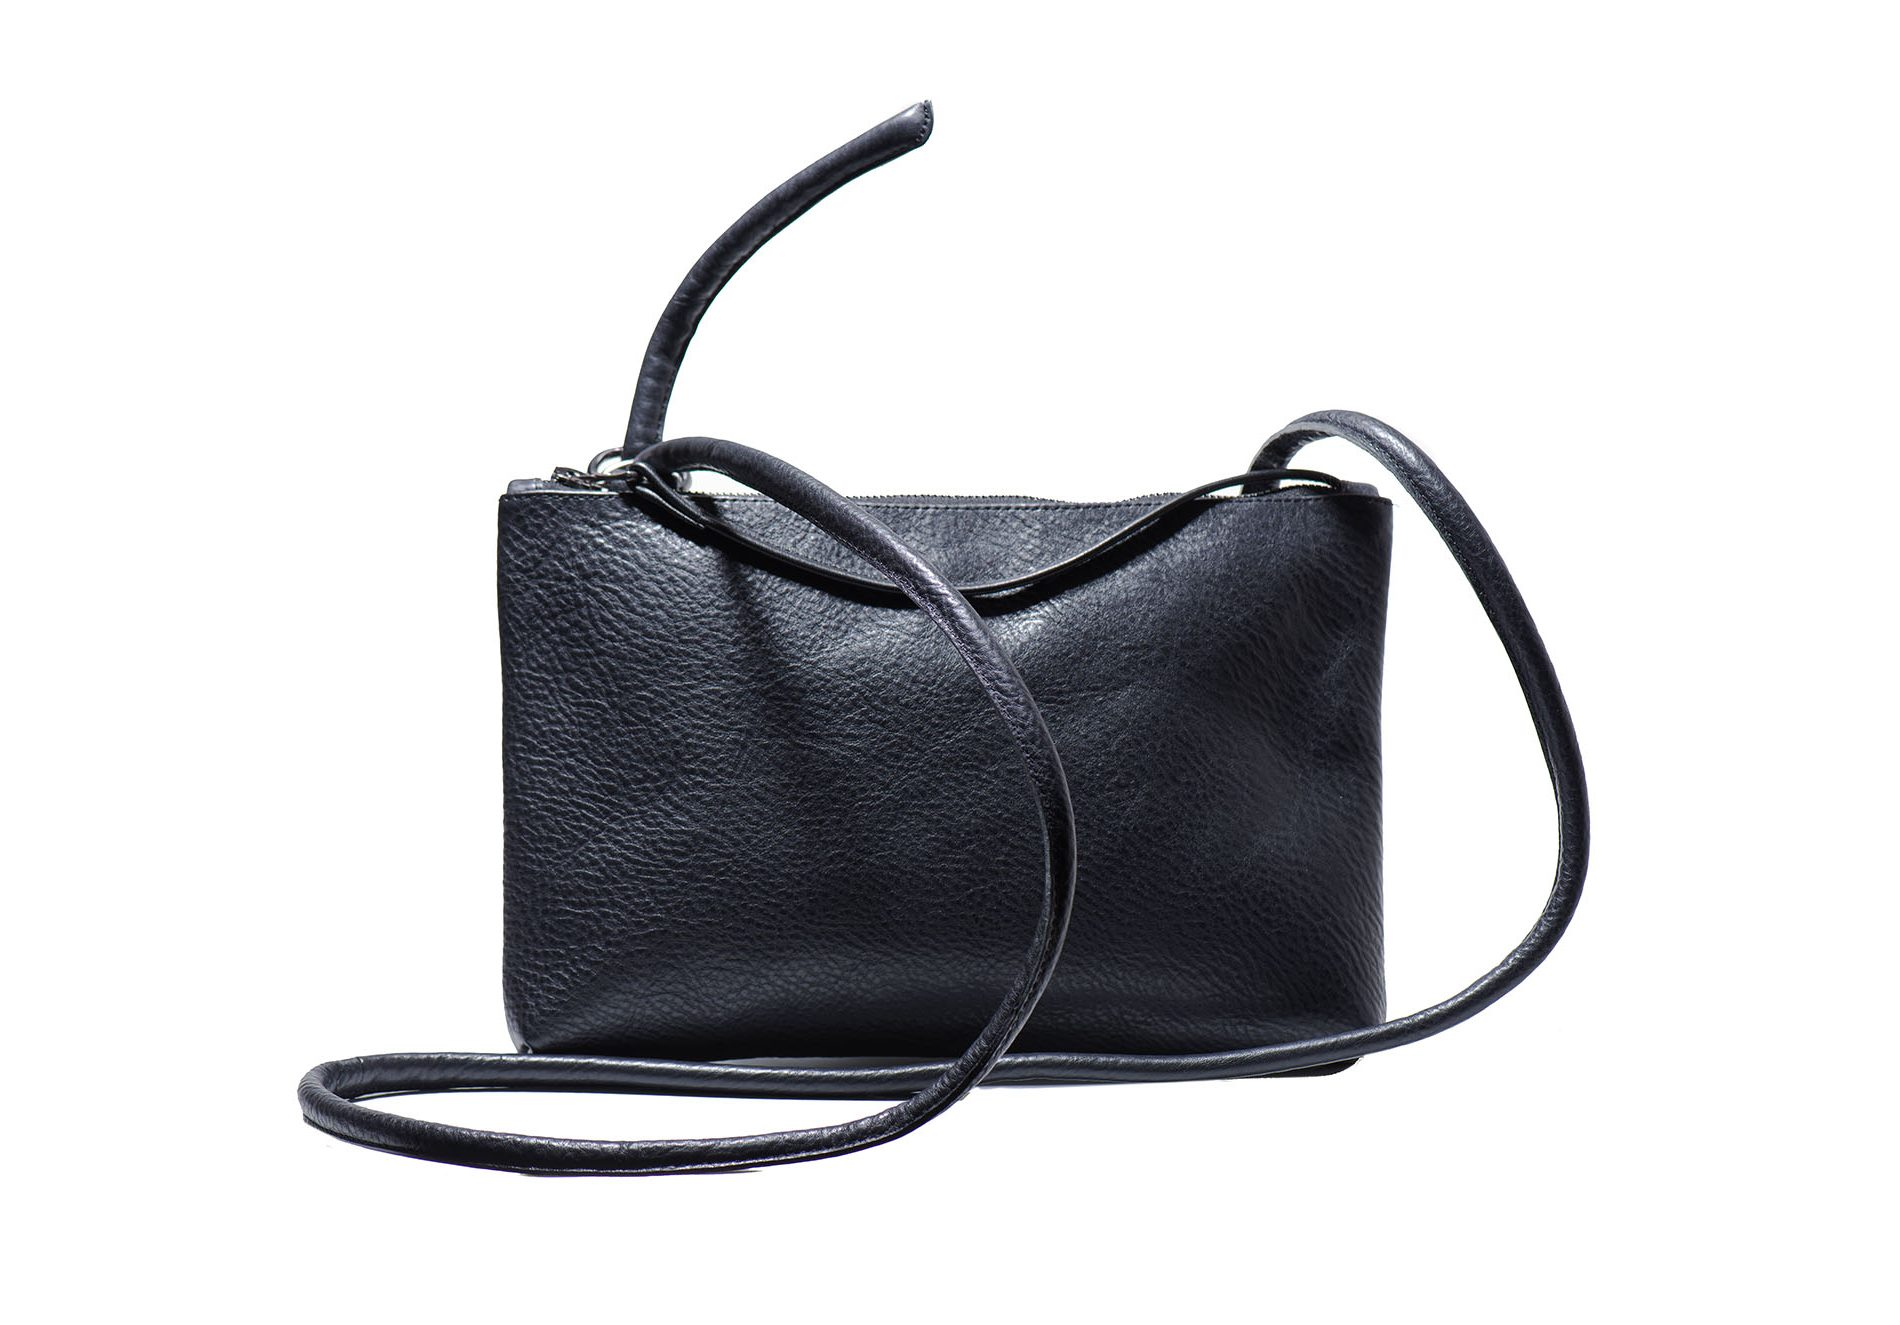 Crossbody bag by June9Bags